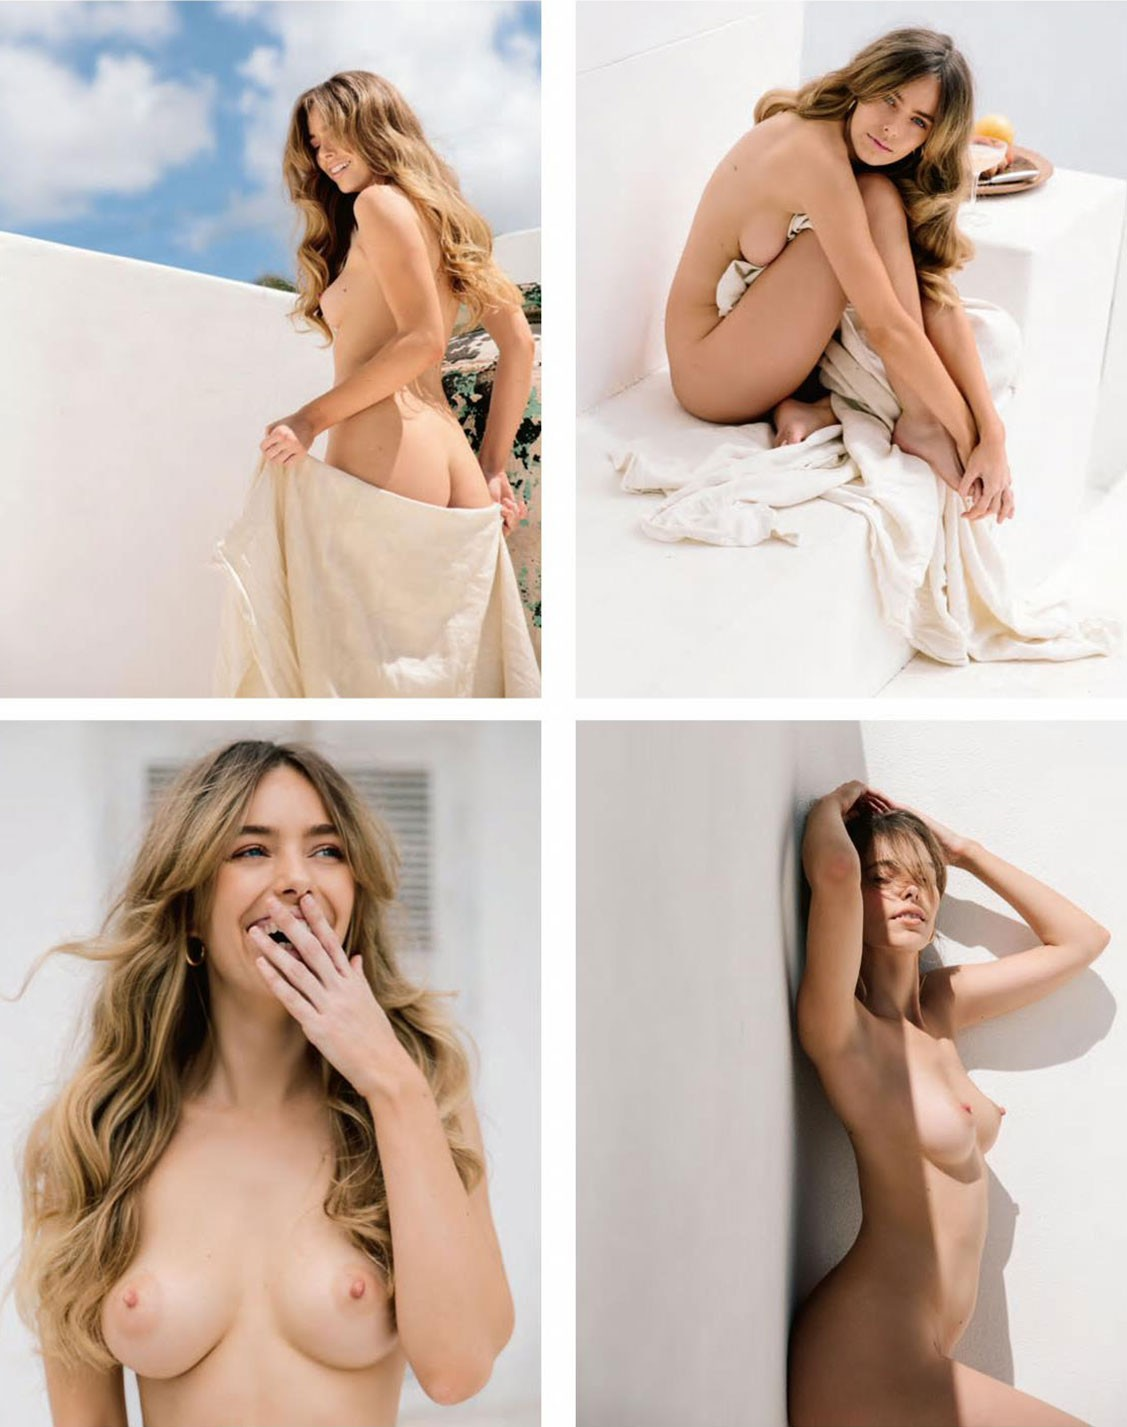 Anthea Page nude by Ali Mitton - Playboy US january/february 2018